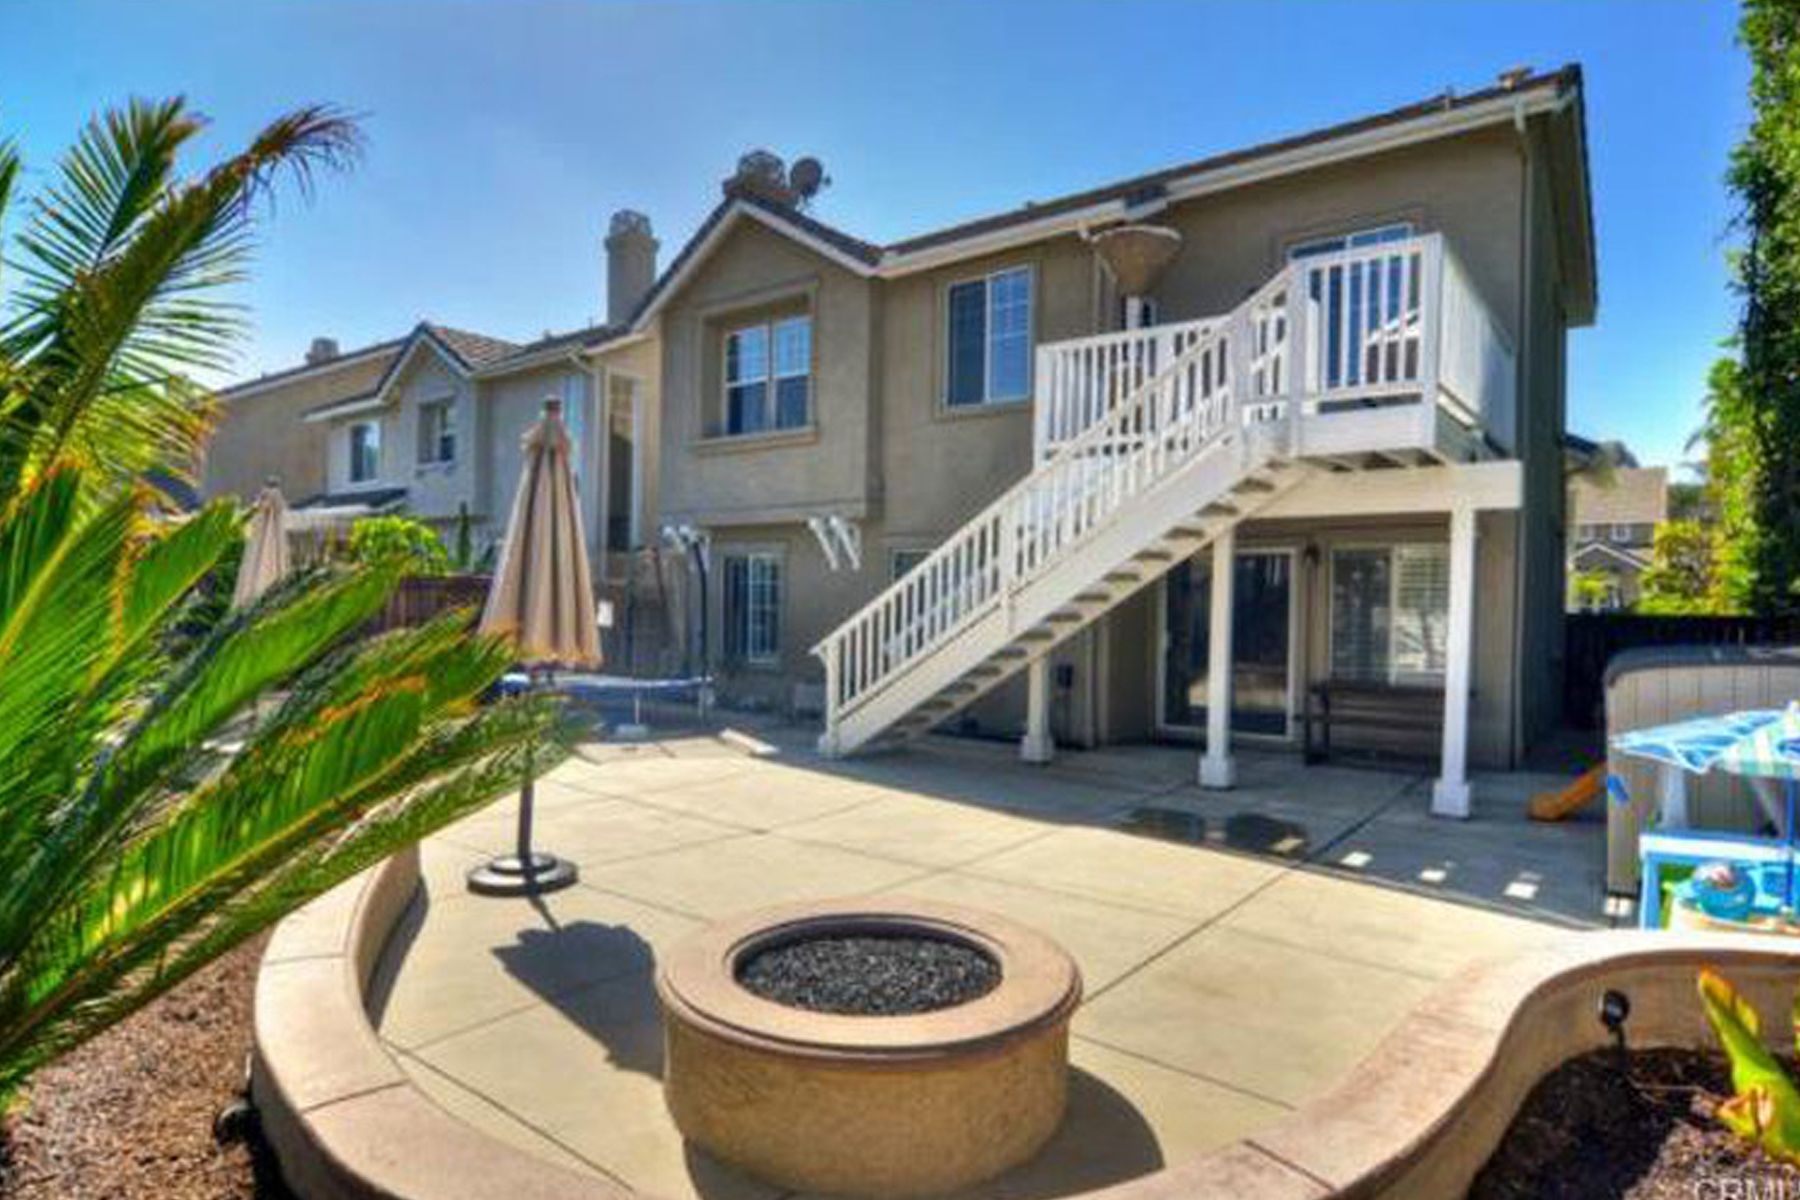 SOLD 7/7/2014    $685,000 713 CALLE POLVOROSA, SAN CLEMENTE 92673